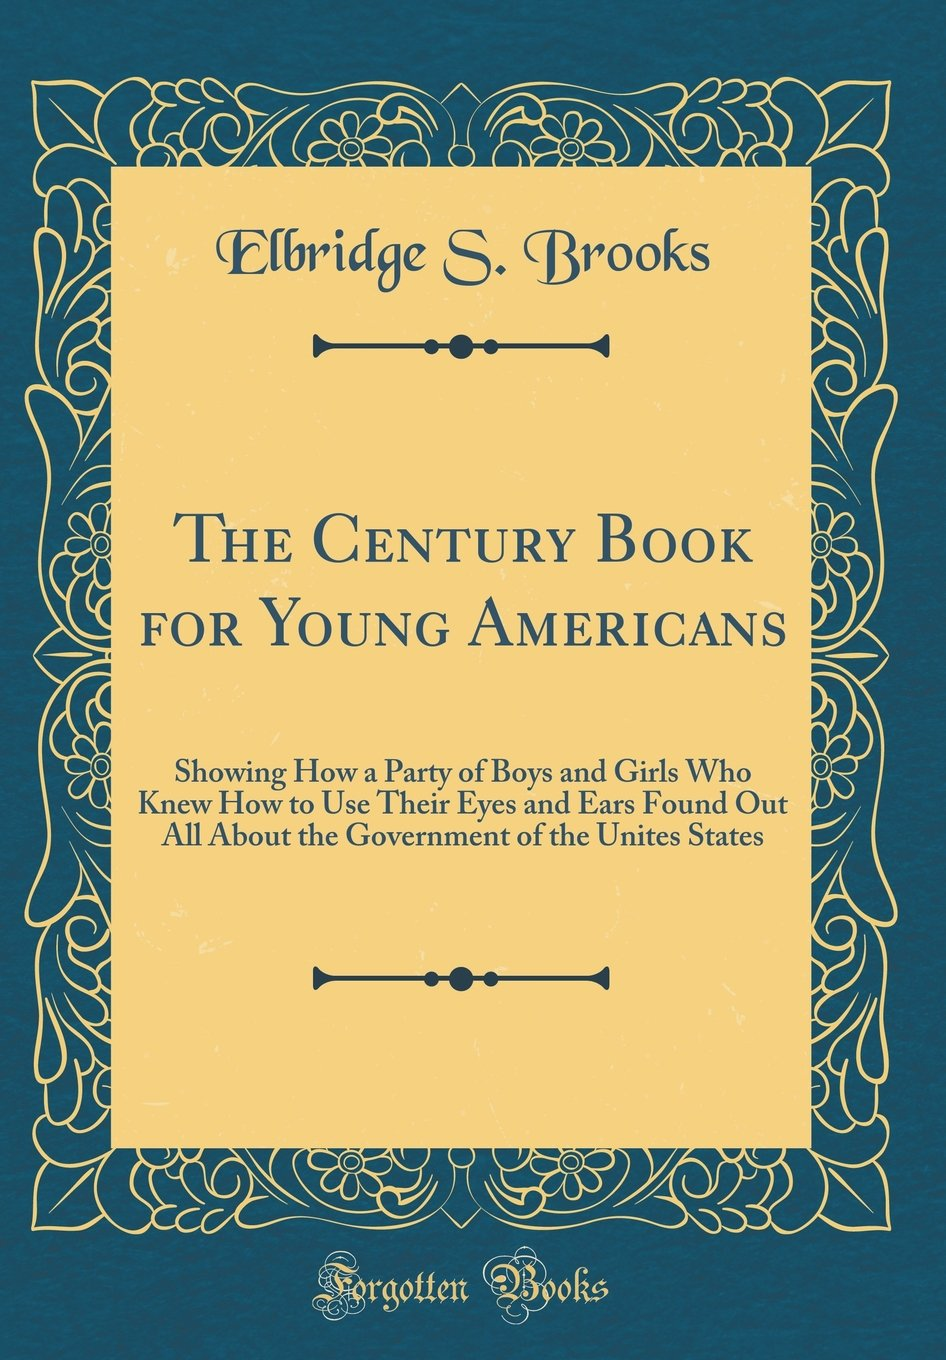 Download The Century Book for Young Americans: Showing How a Party of Boys and Girls Who Knew How to Use Their Eyes and Ears Found Out All about the Government of the Unites States (Classic Reprint) PDF